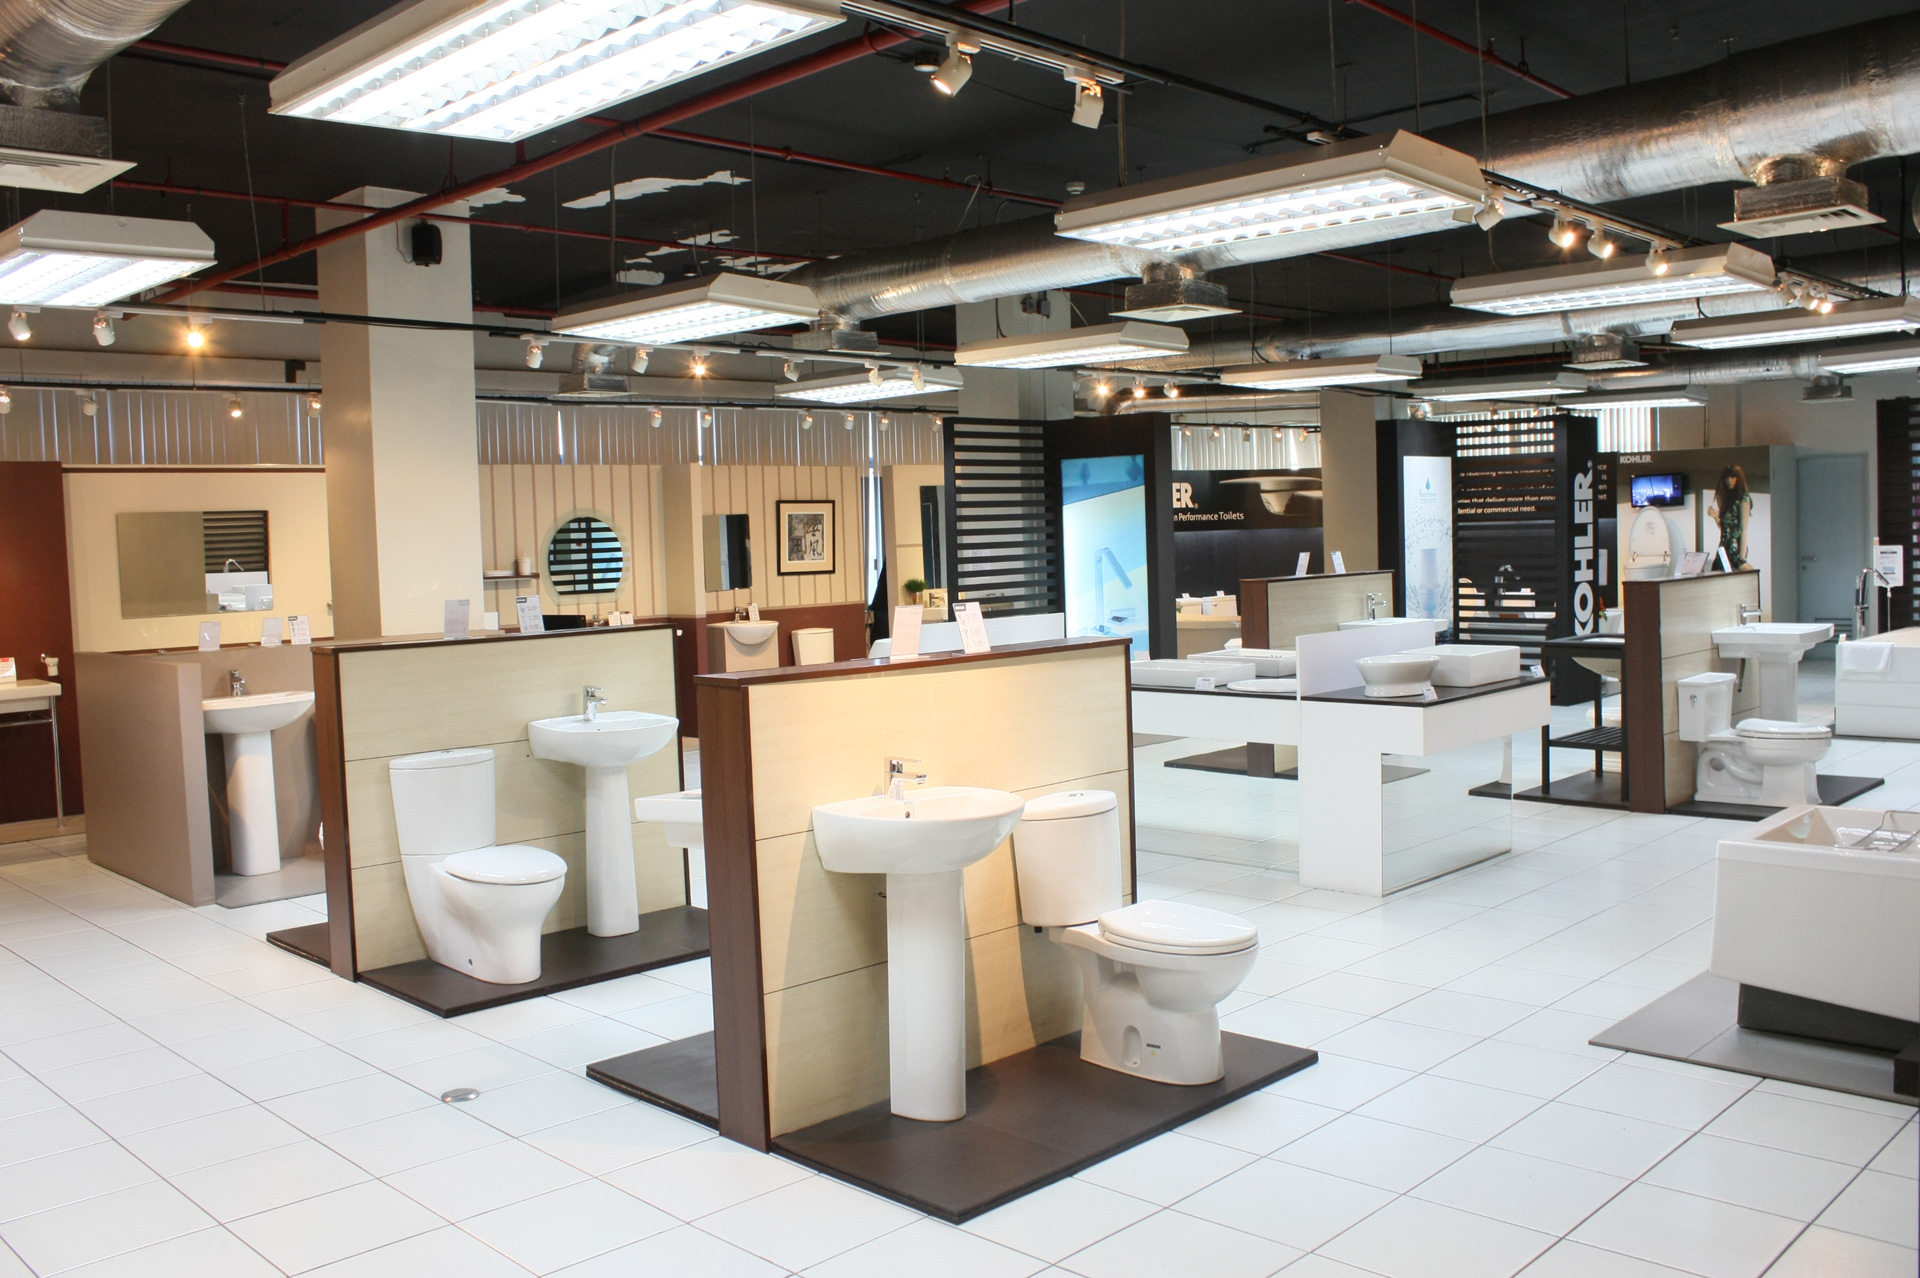 Kohler Grand Bathroom Sale | Philippine Tatler